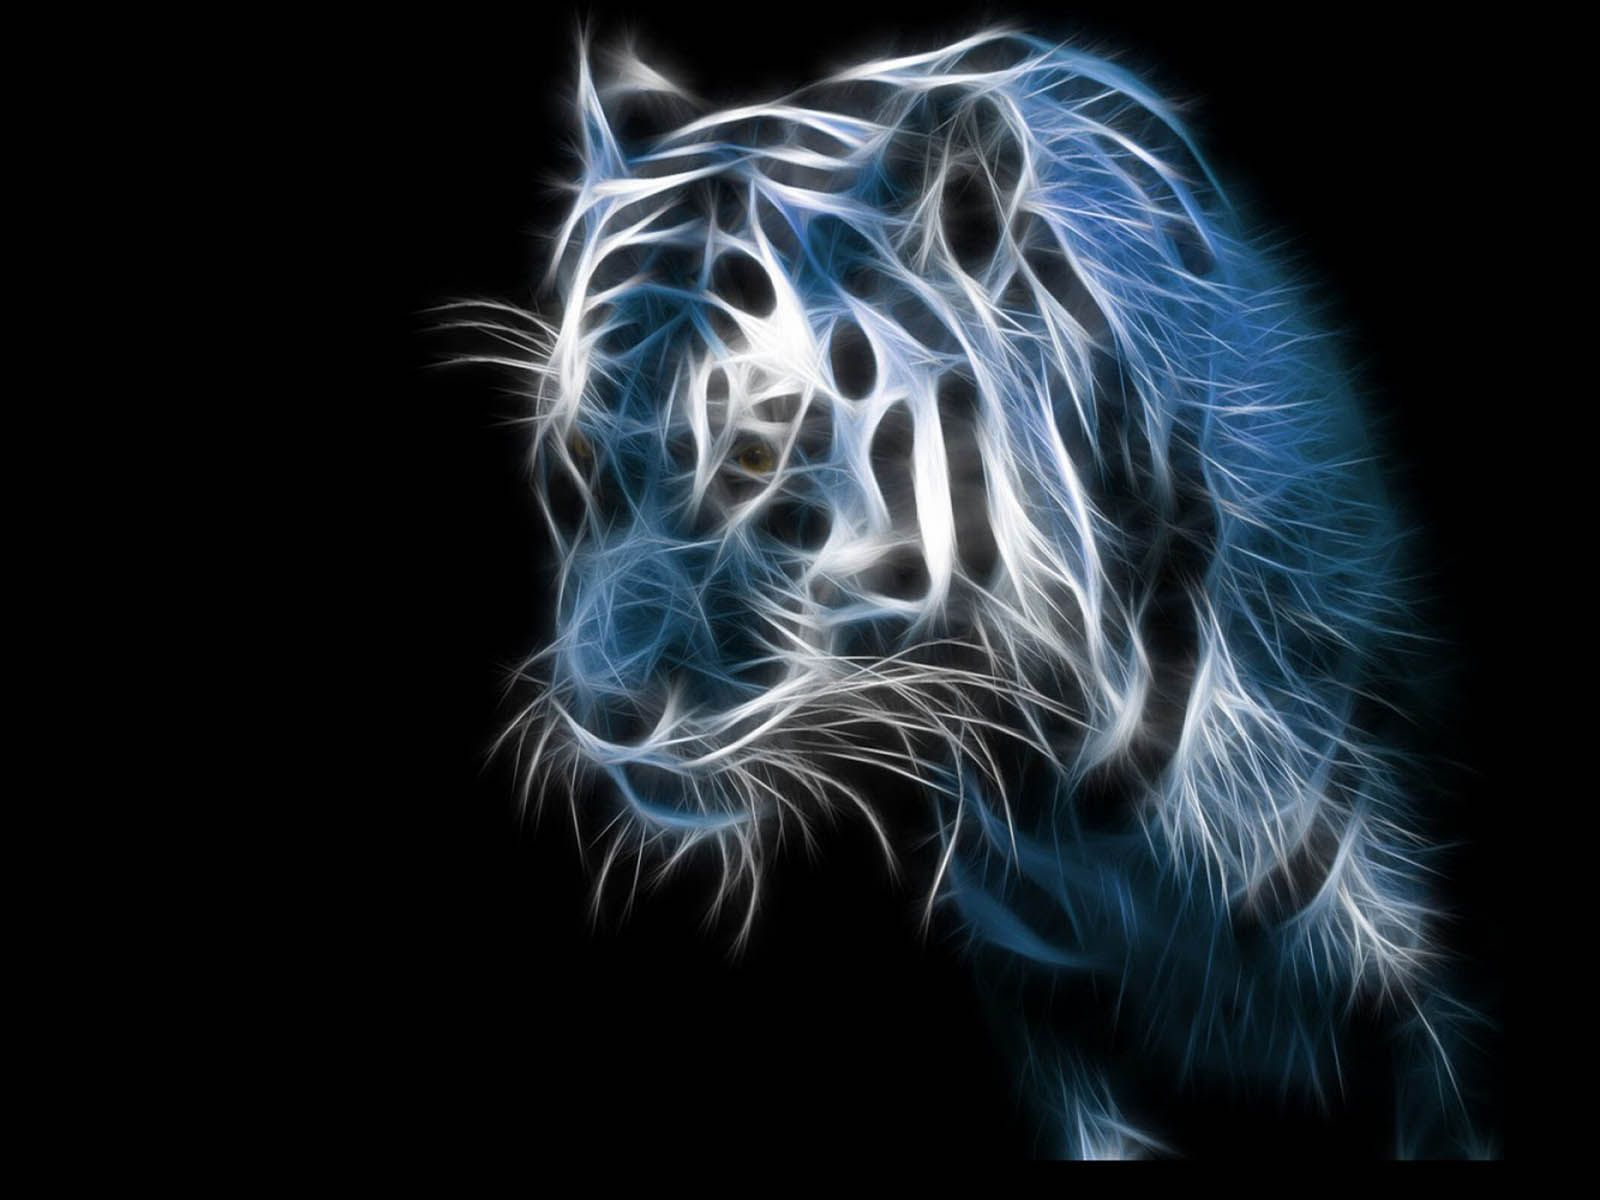 Wallpapers Hd Wallpapers For Laptop Cool Desktop Backgrounds Tiger Wallpaper